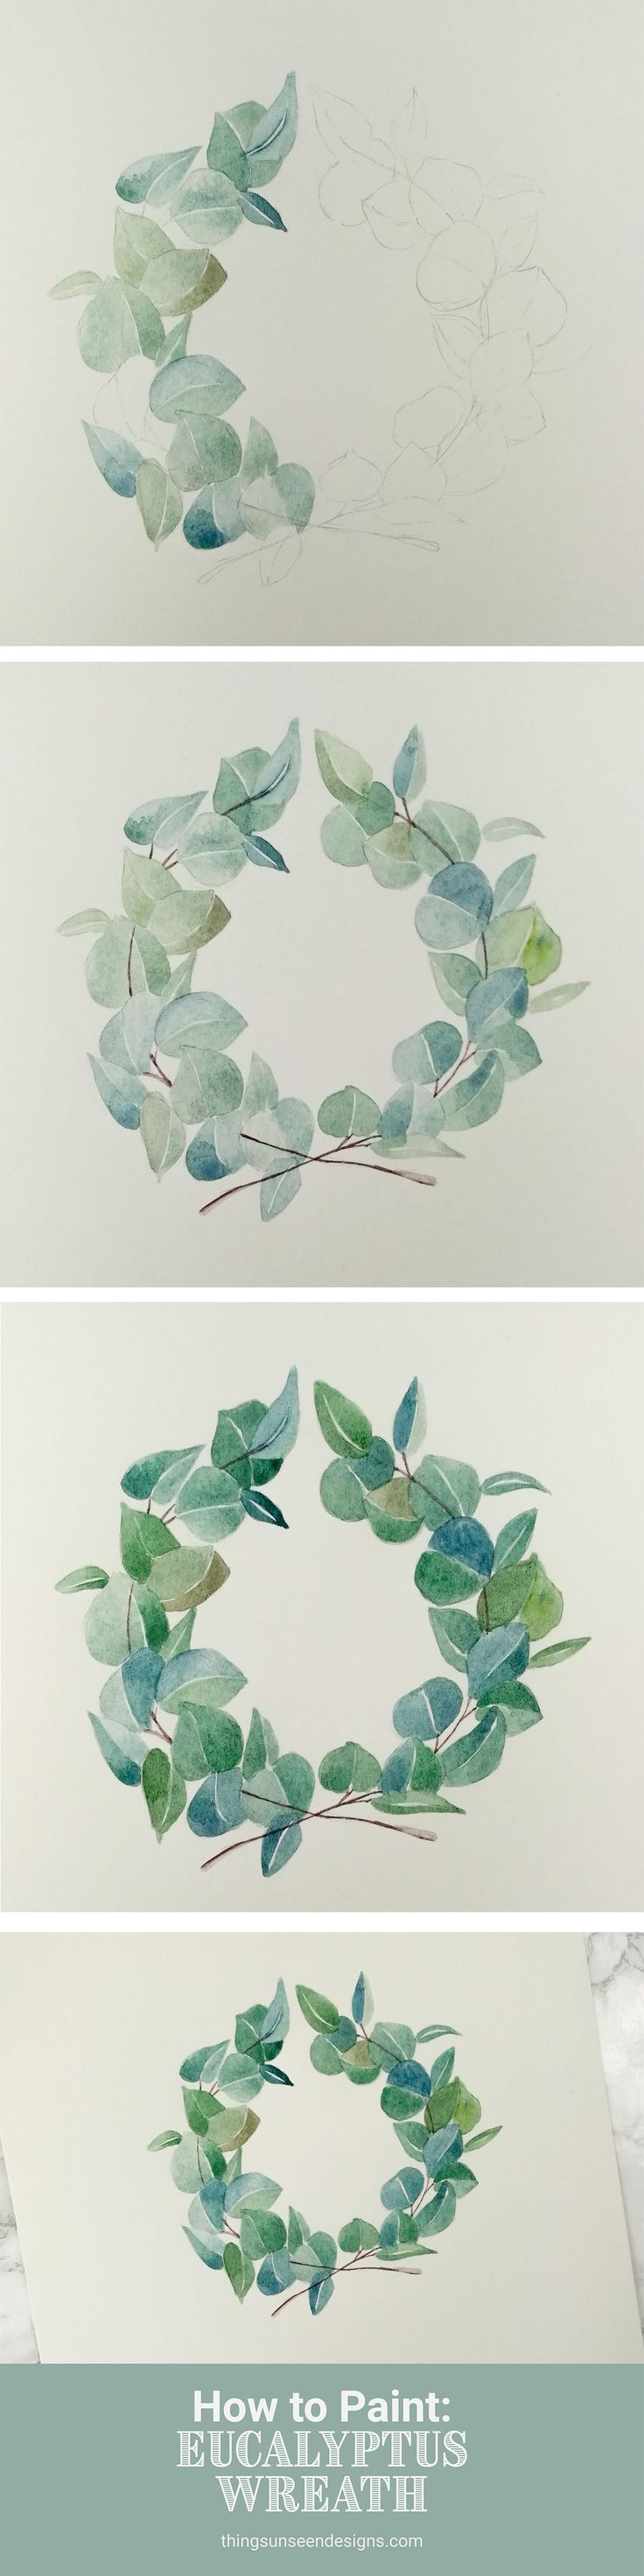 Photo of Painting: Eucalyptus wreath • Invisible designs